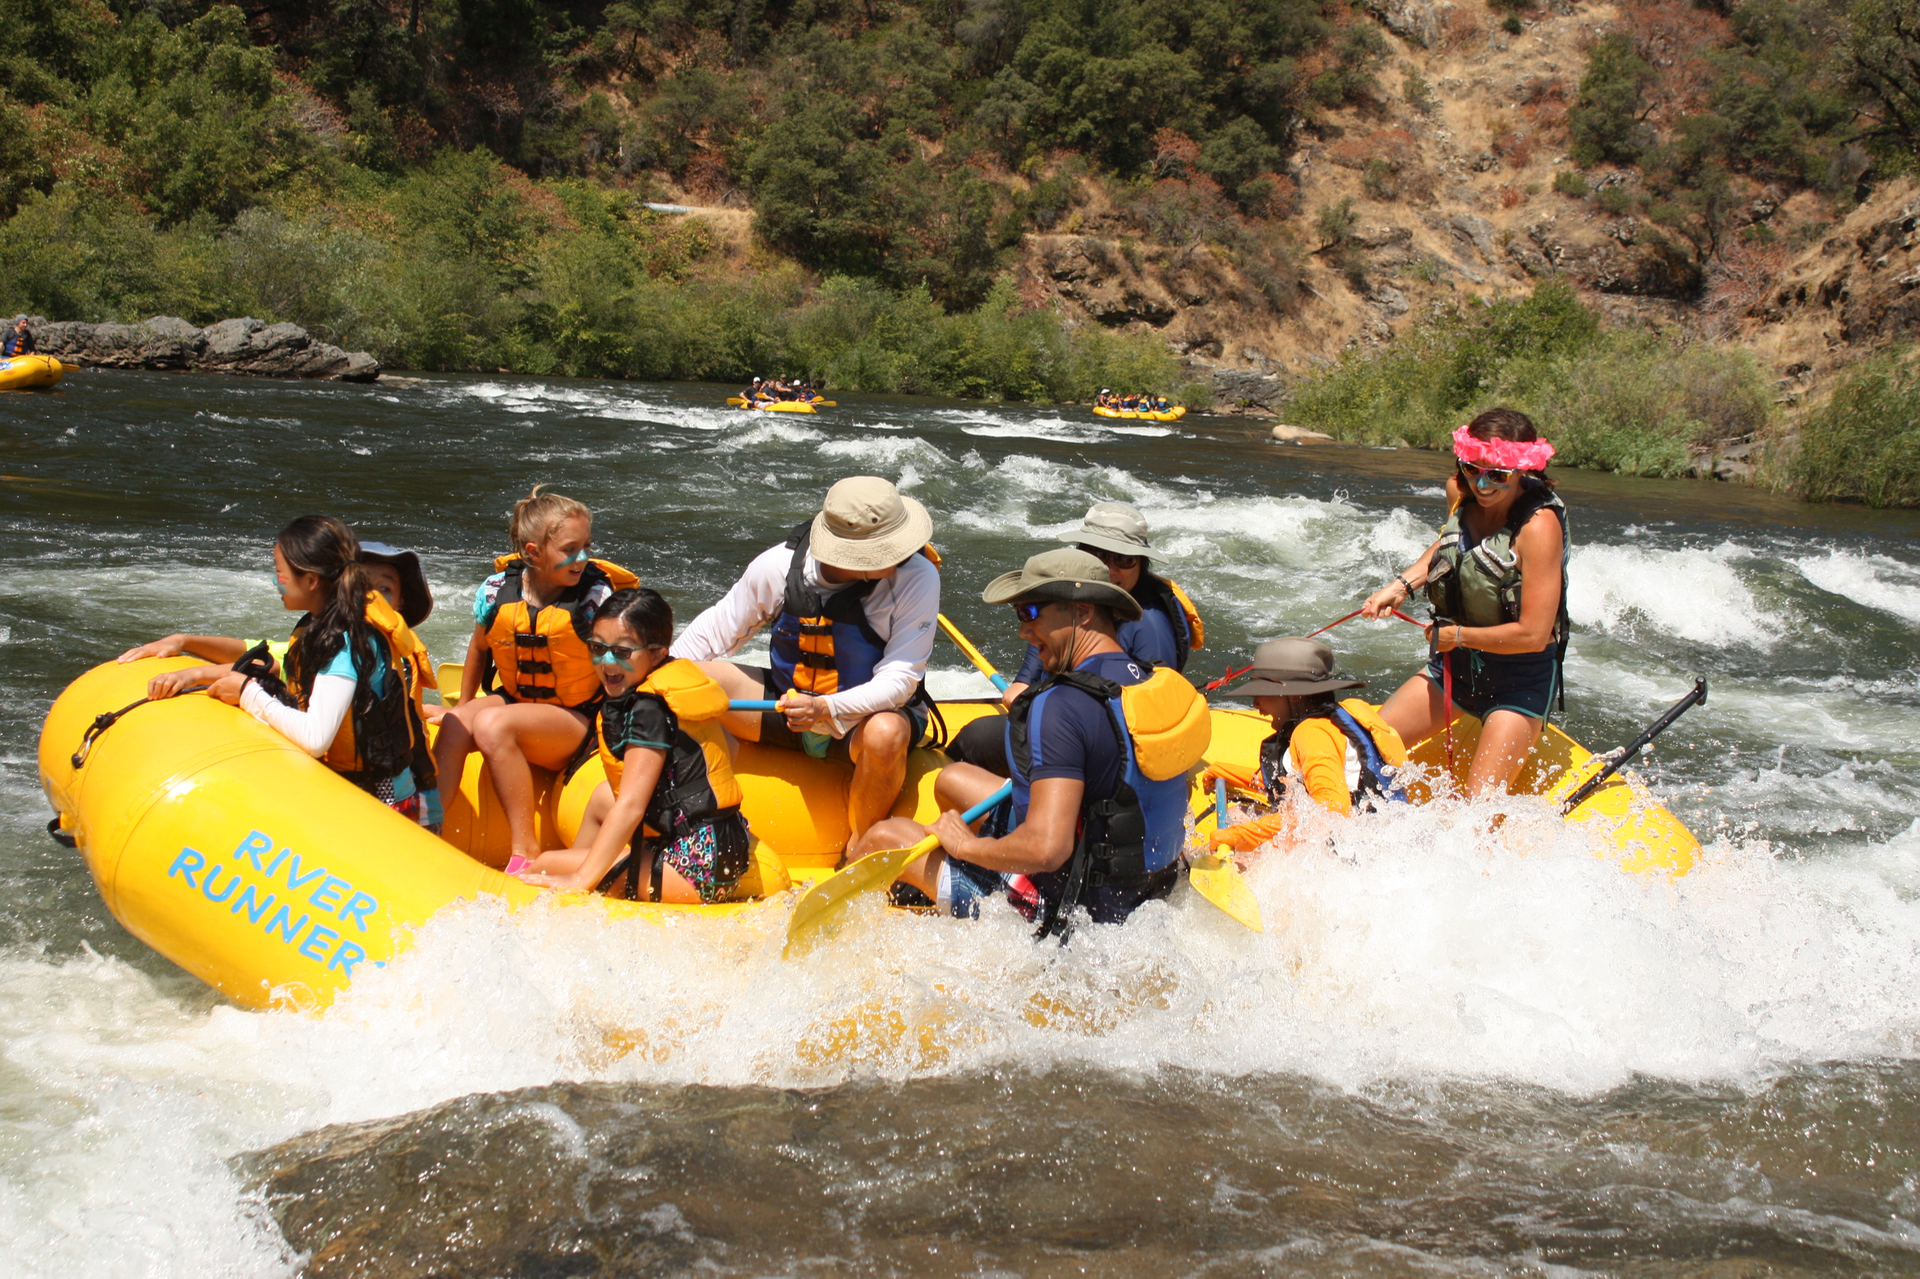 Sarah V and her crew having a fun side surf on the South Fork of the American River